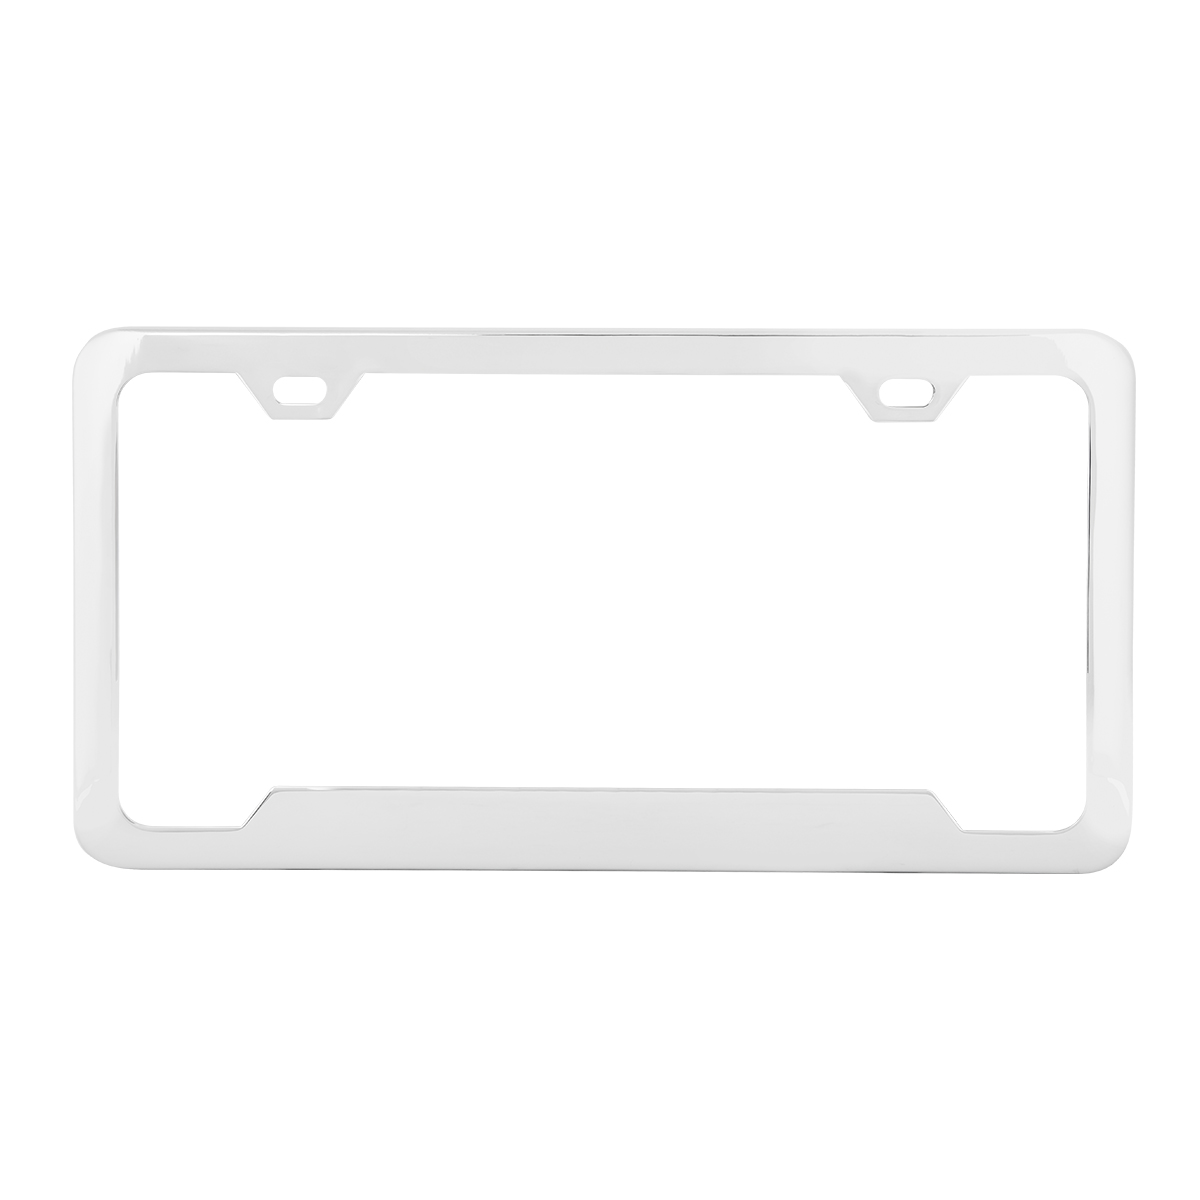 60408 Plain 2-Hole License Plate Frames with Center Raised